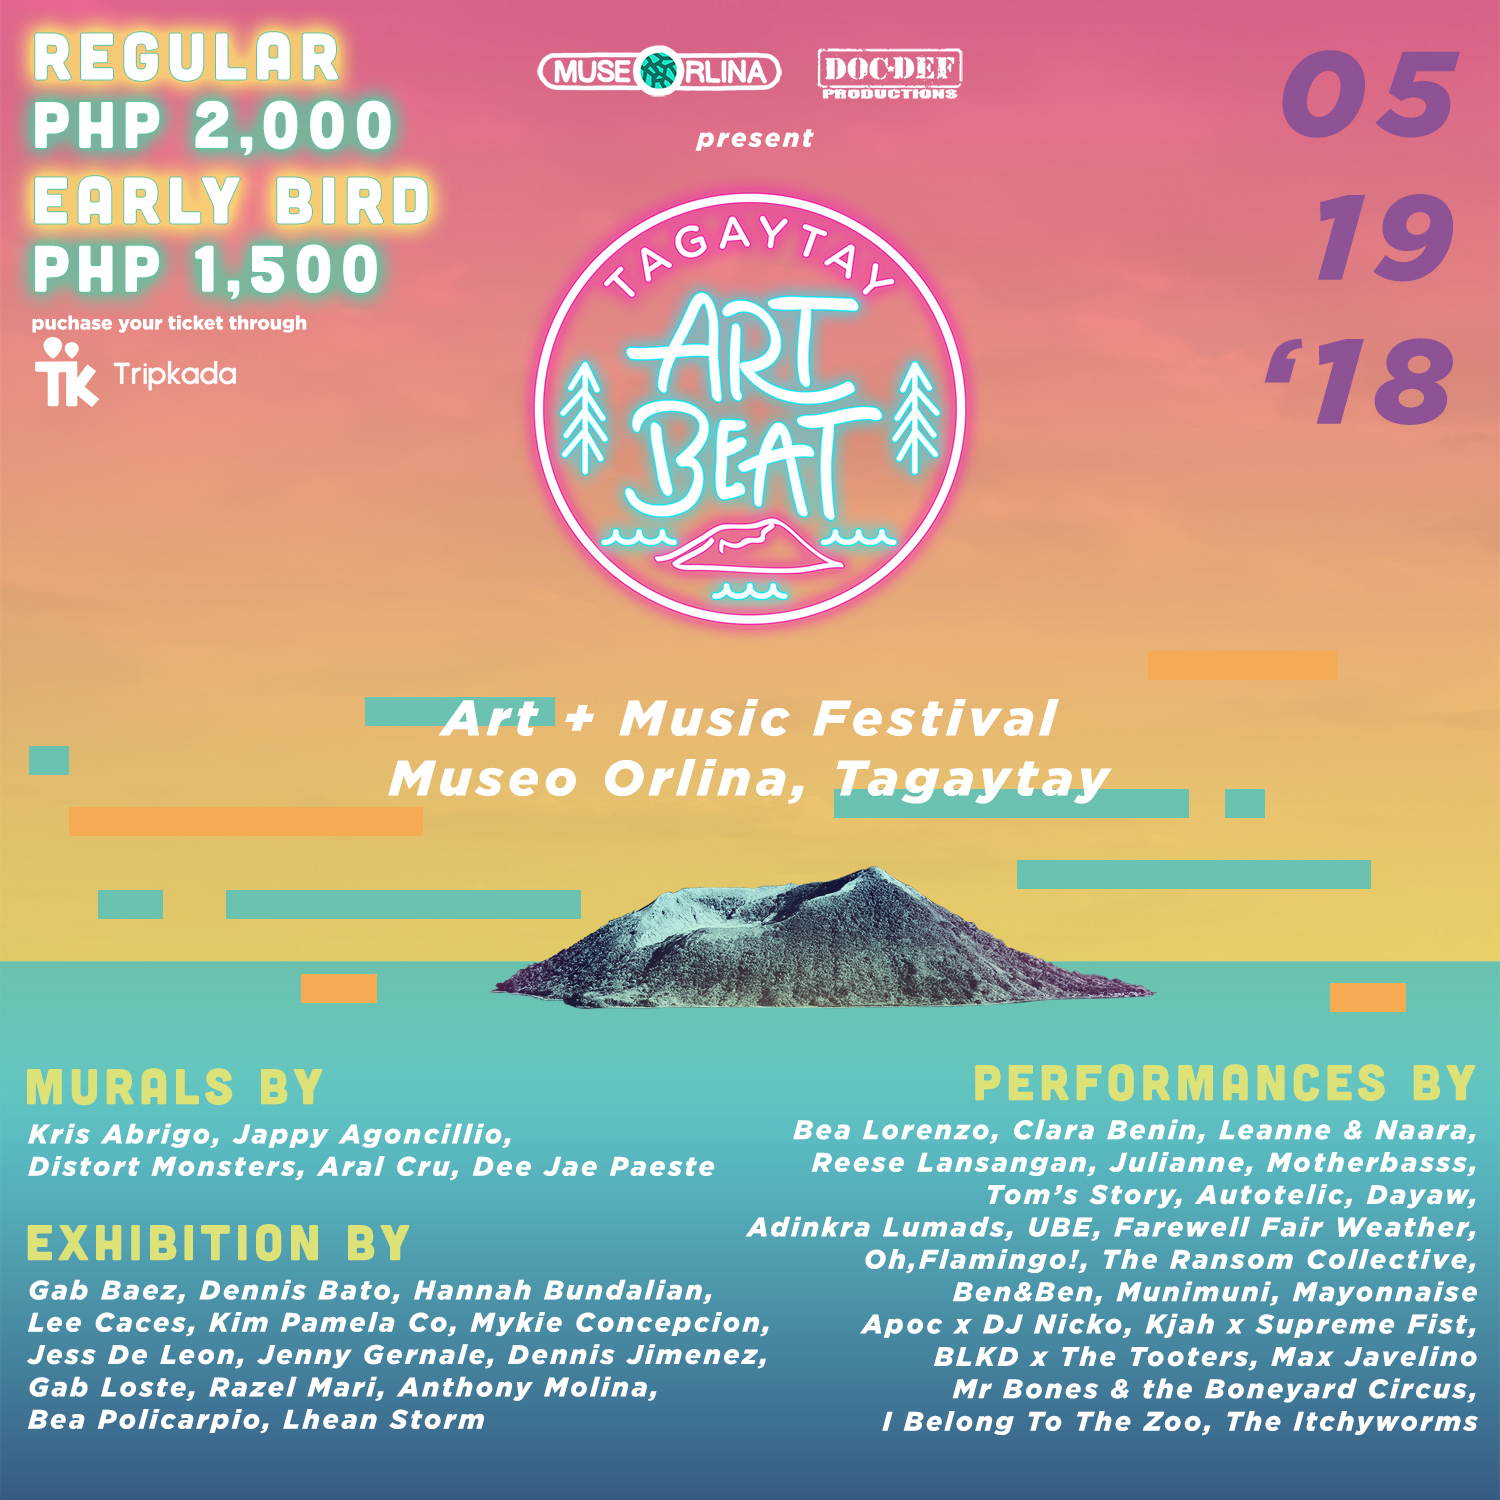 The Itchyworms, Mayonnaise, Clara Benin and more set to